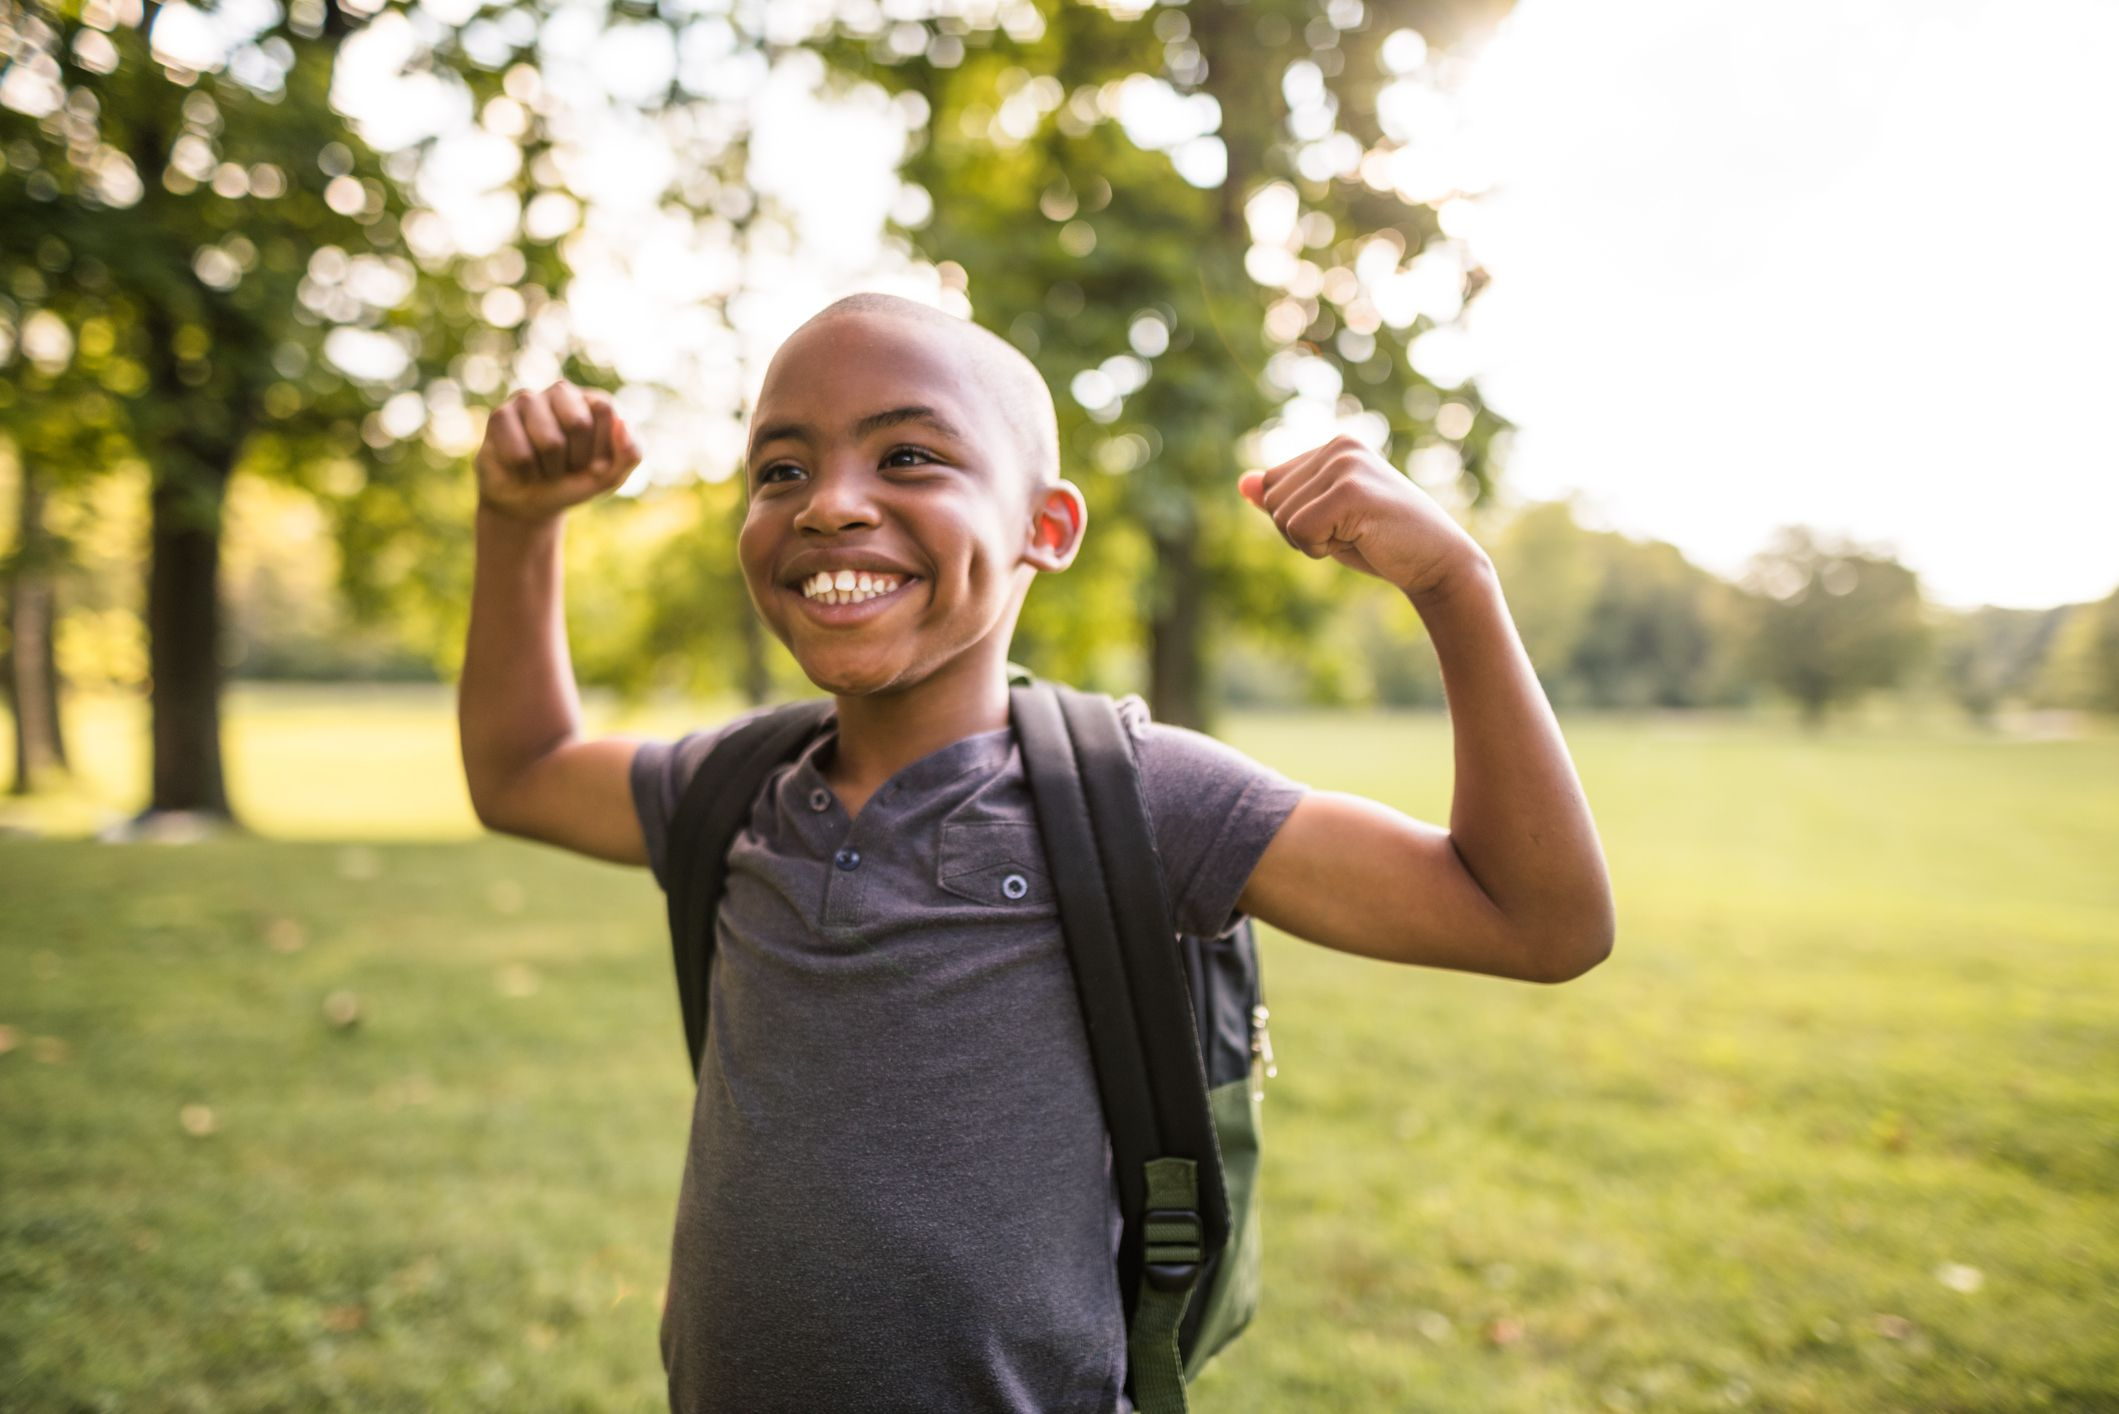 Resistance Training for Kids and Teens Can Bring Major Benefits